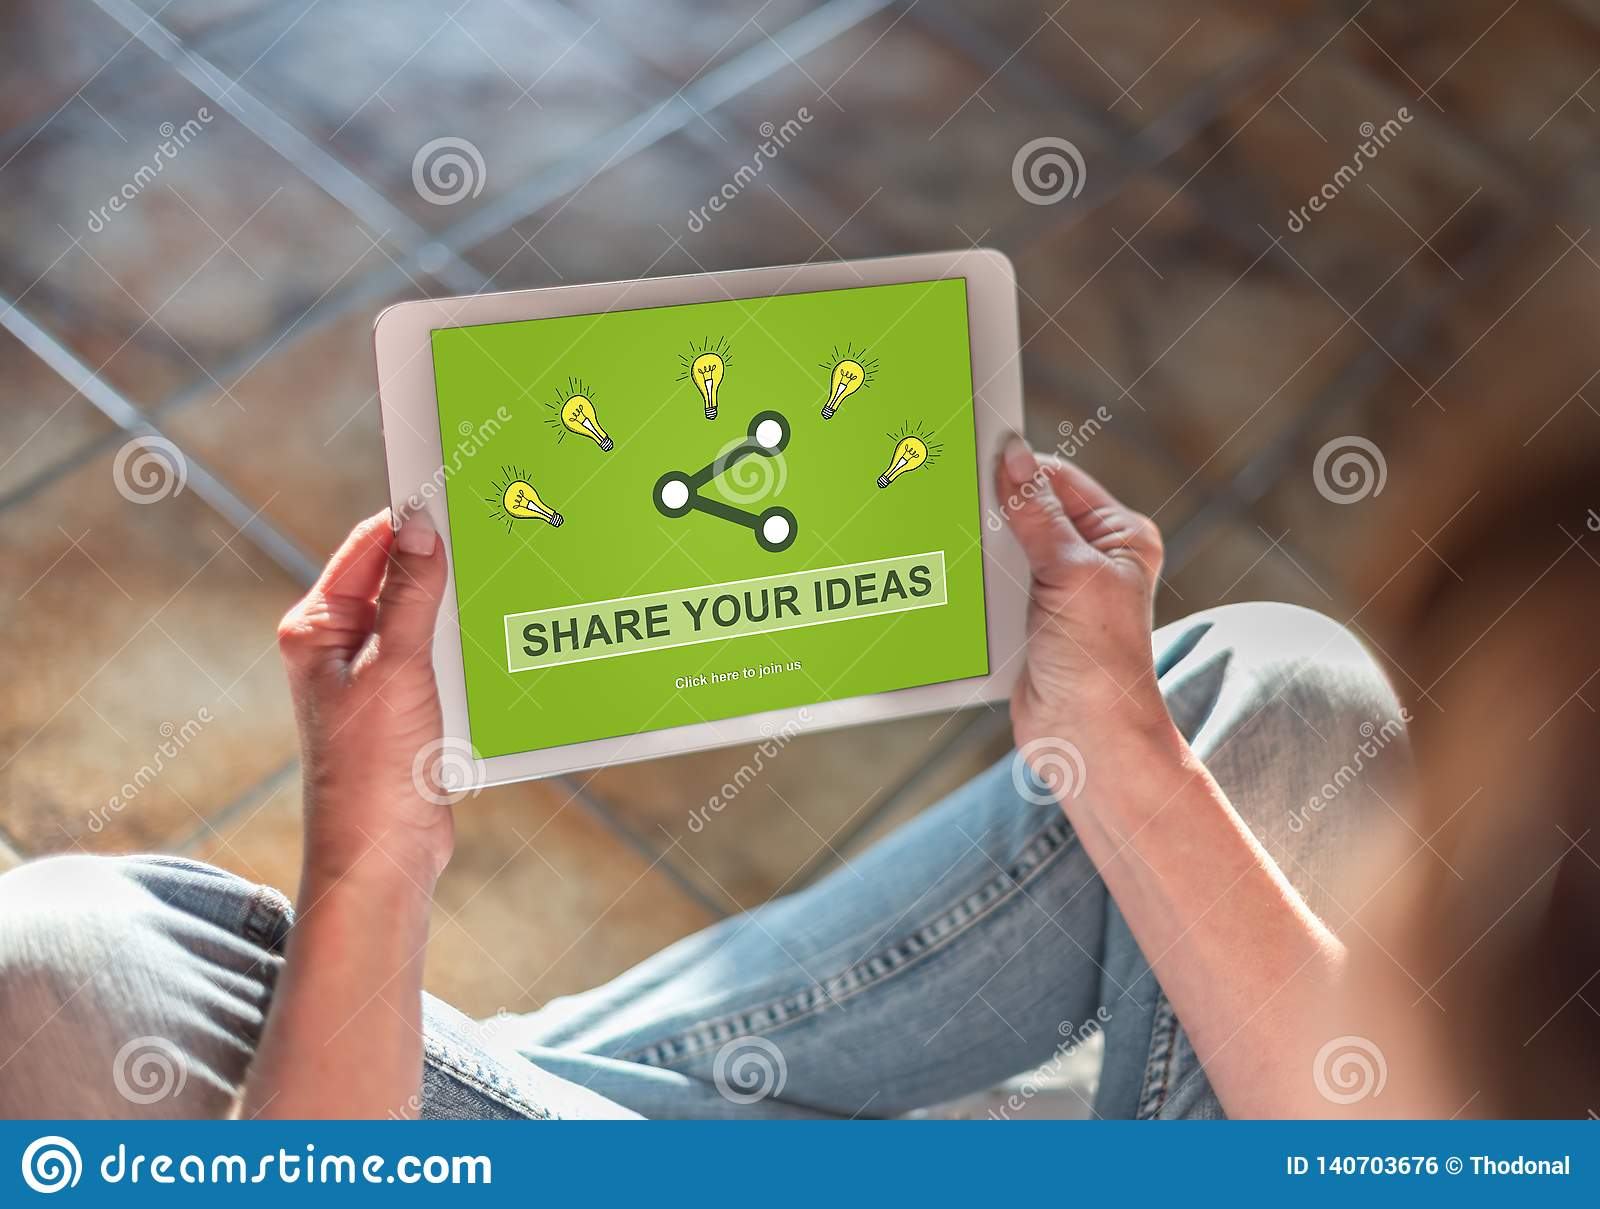 Ideas sharing concept on a tablet